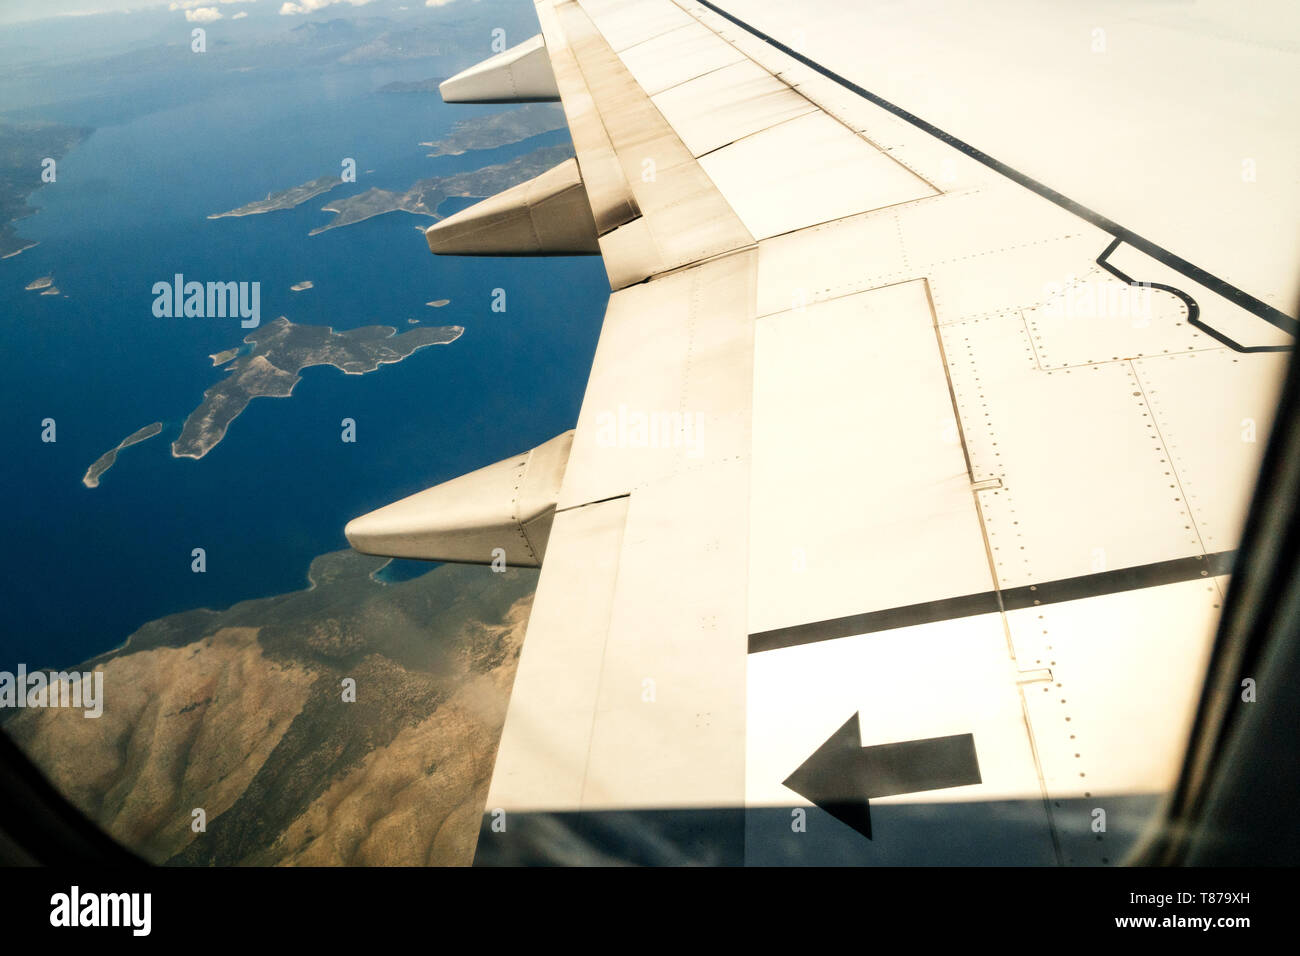 Greek Airport Stock Photos & Greek Airport Stock Images - Alamy